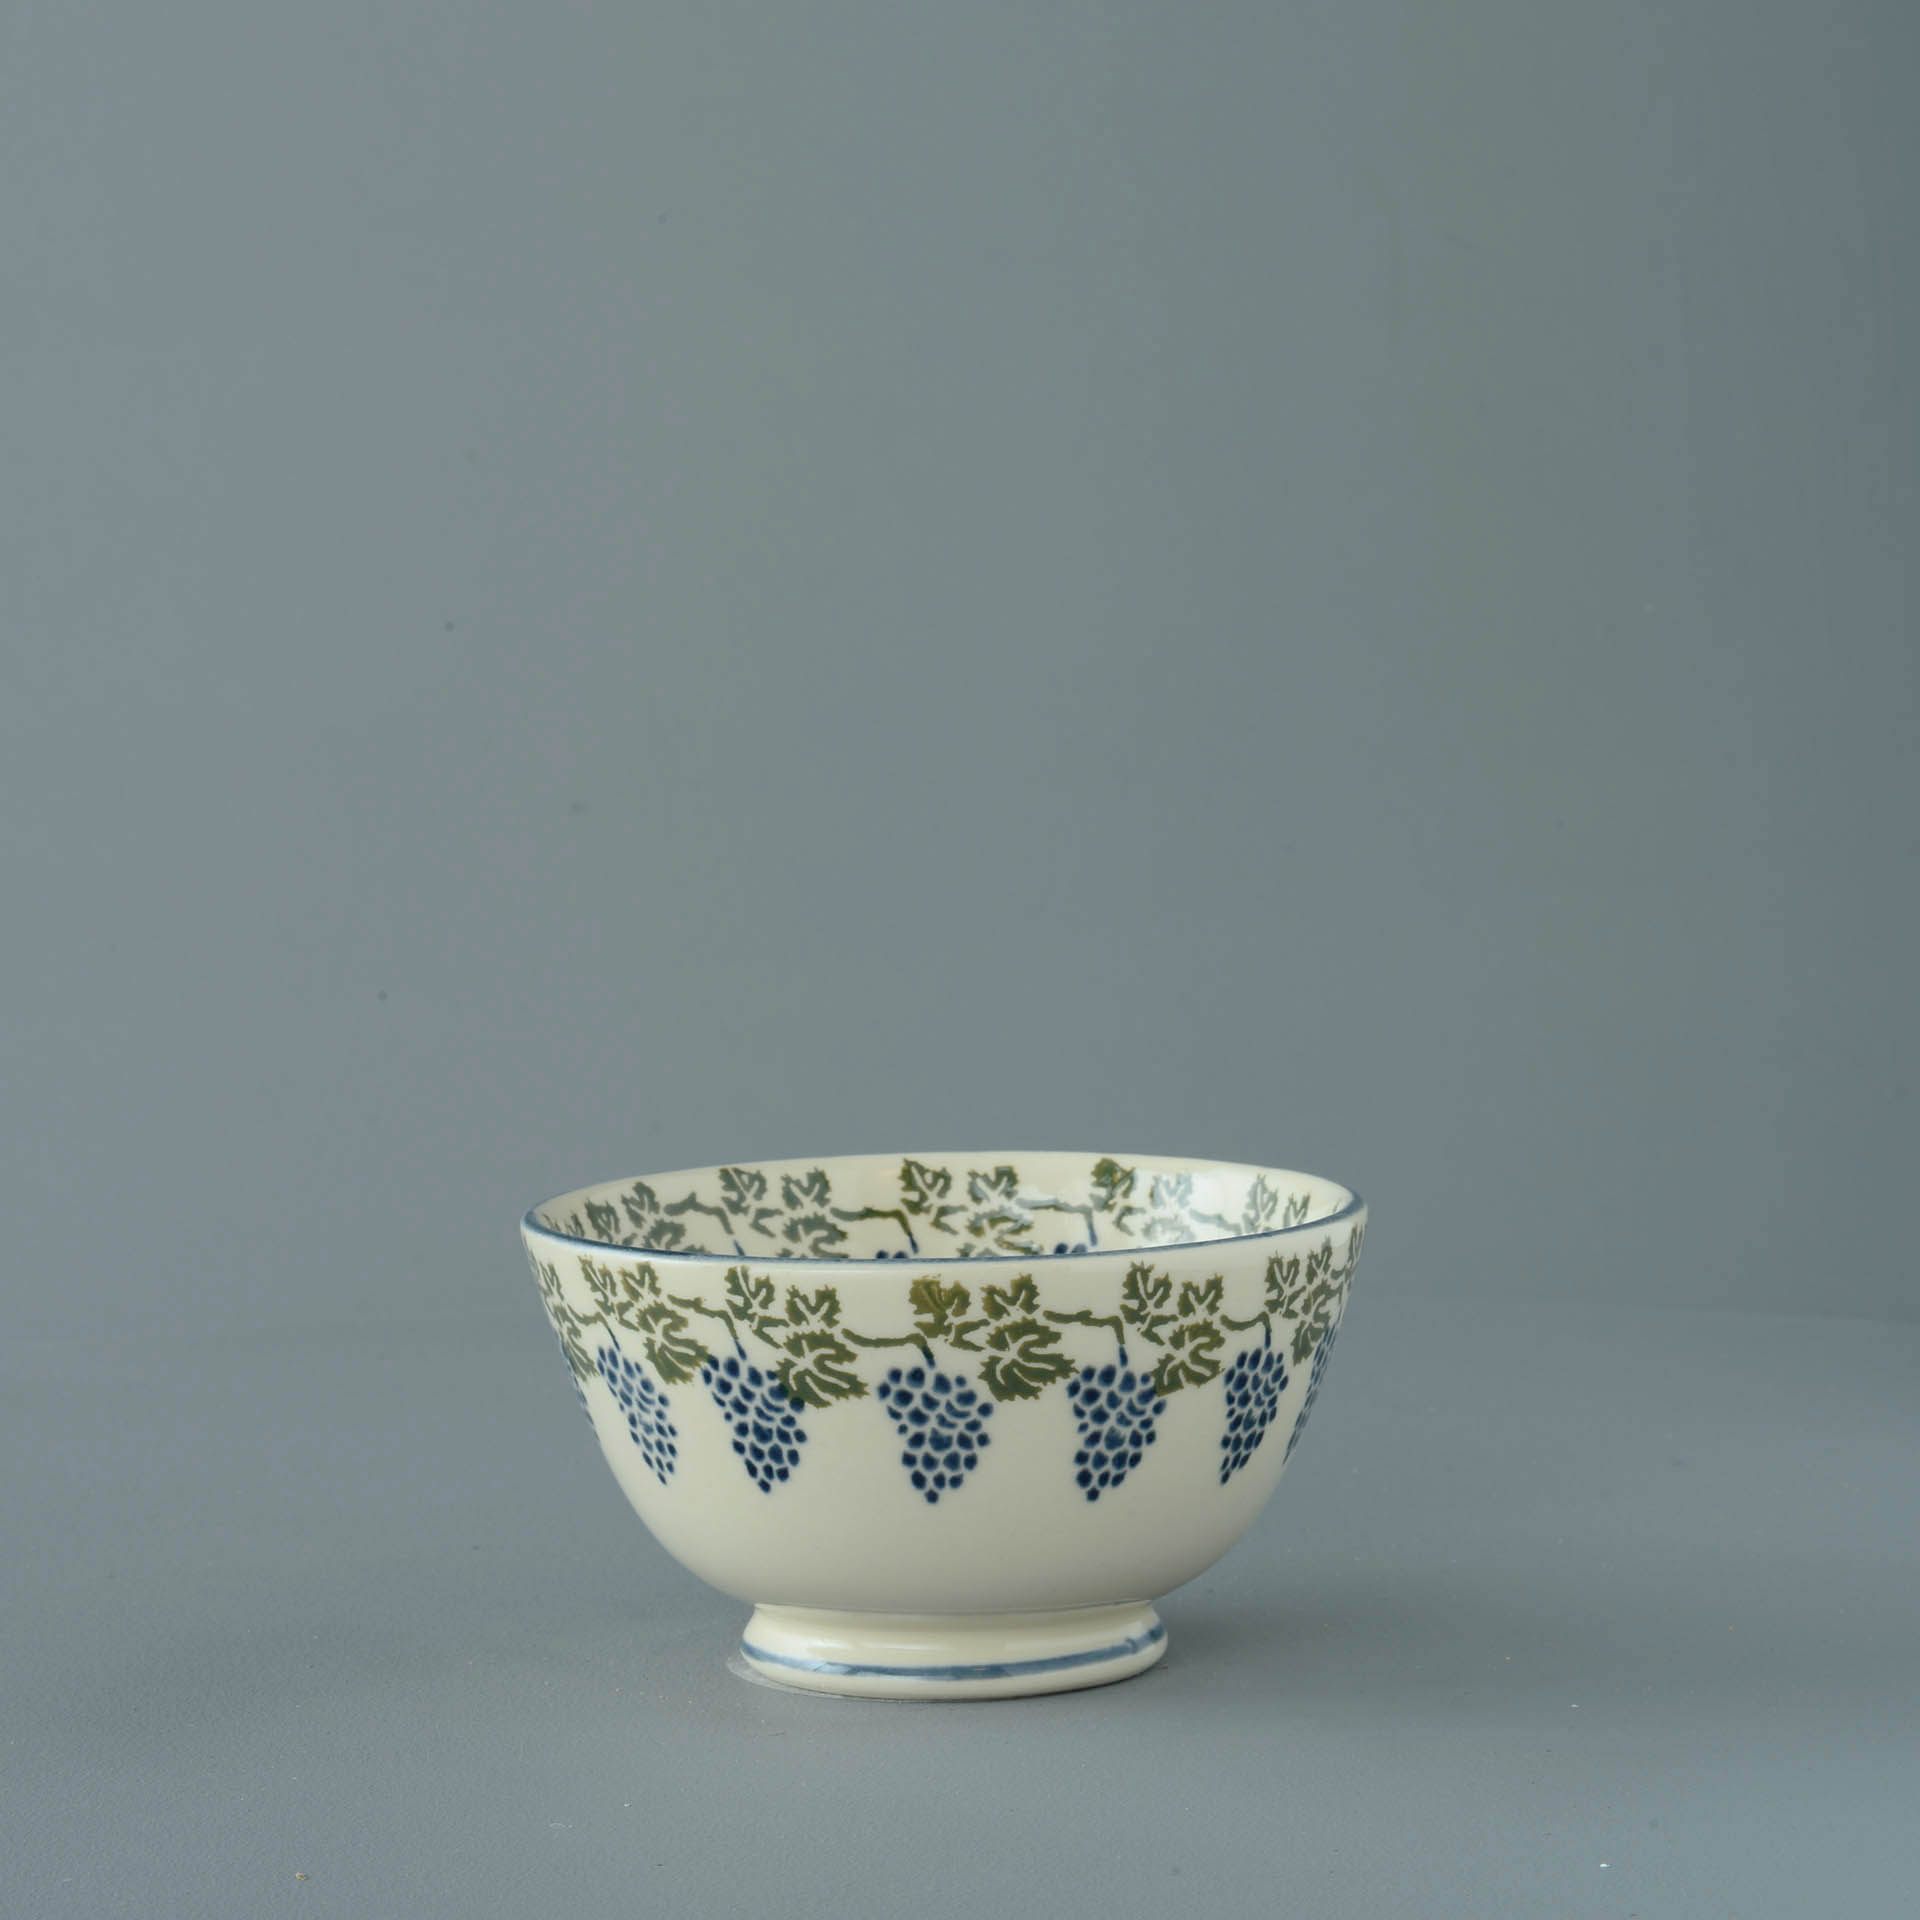 Grapes and Vine Small Bowl 6.5 x 12 cm